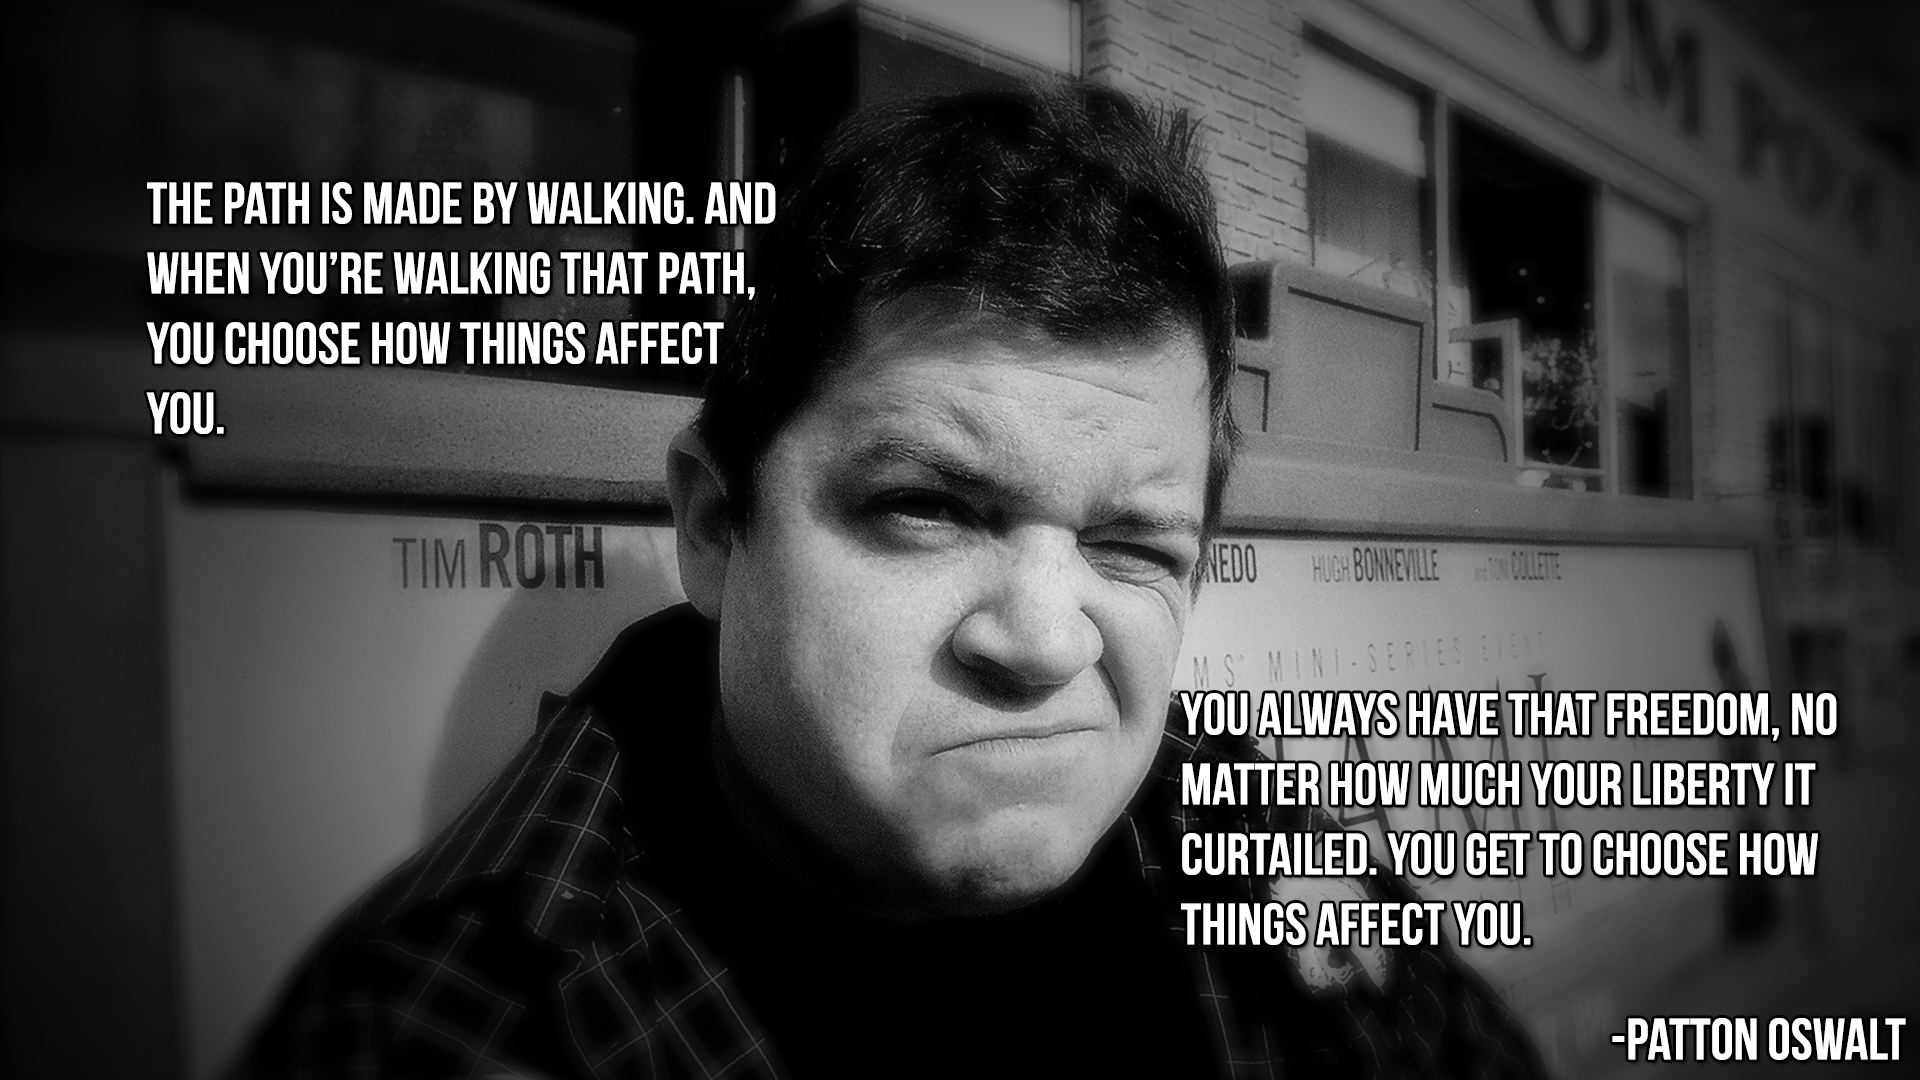 Patton Oswalt's quote #4